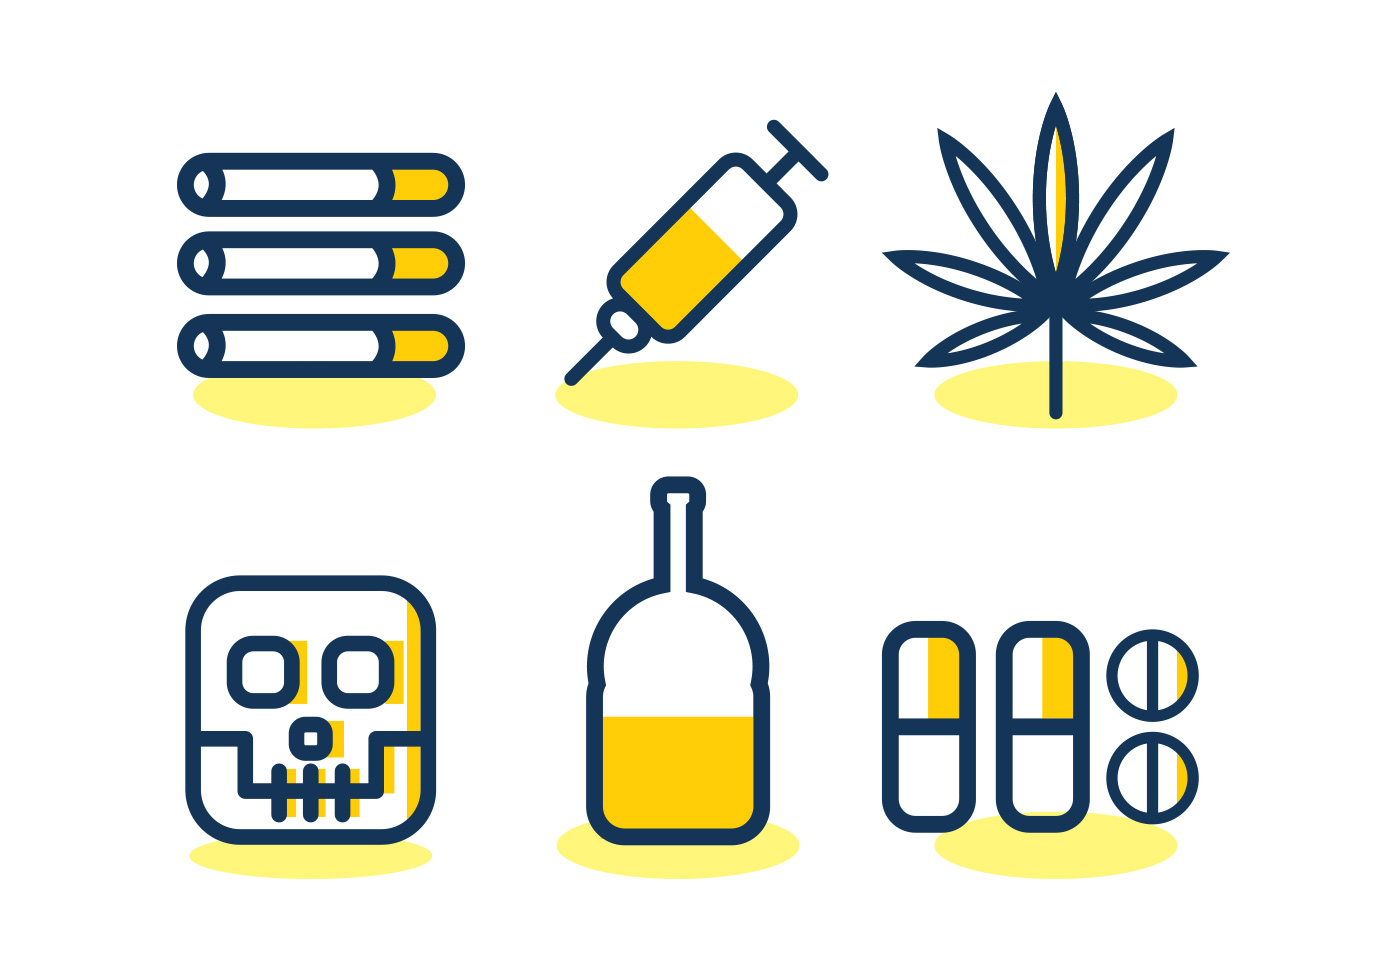 no drugs vector icon set download free vectors clipart graphics vector art https www vecteezy com vector art 99052 no drugs vector icon set